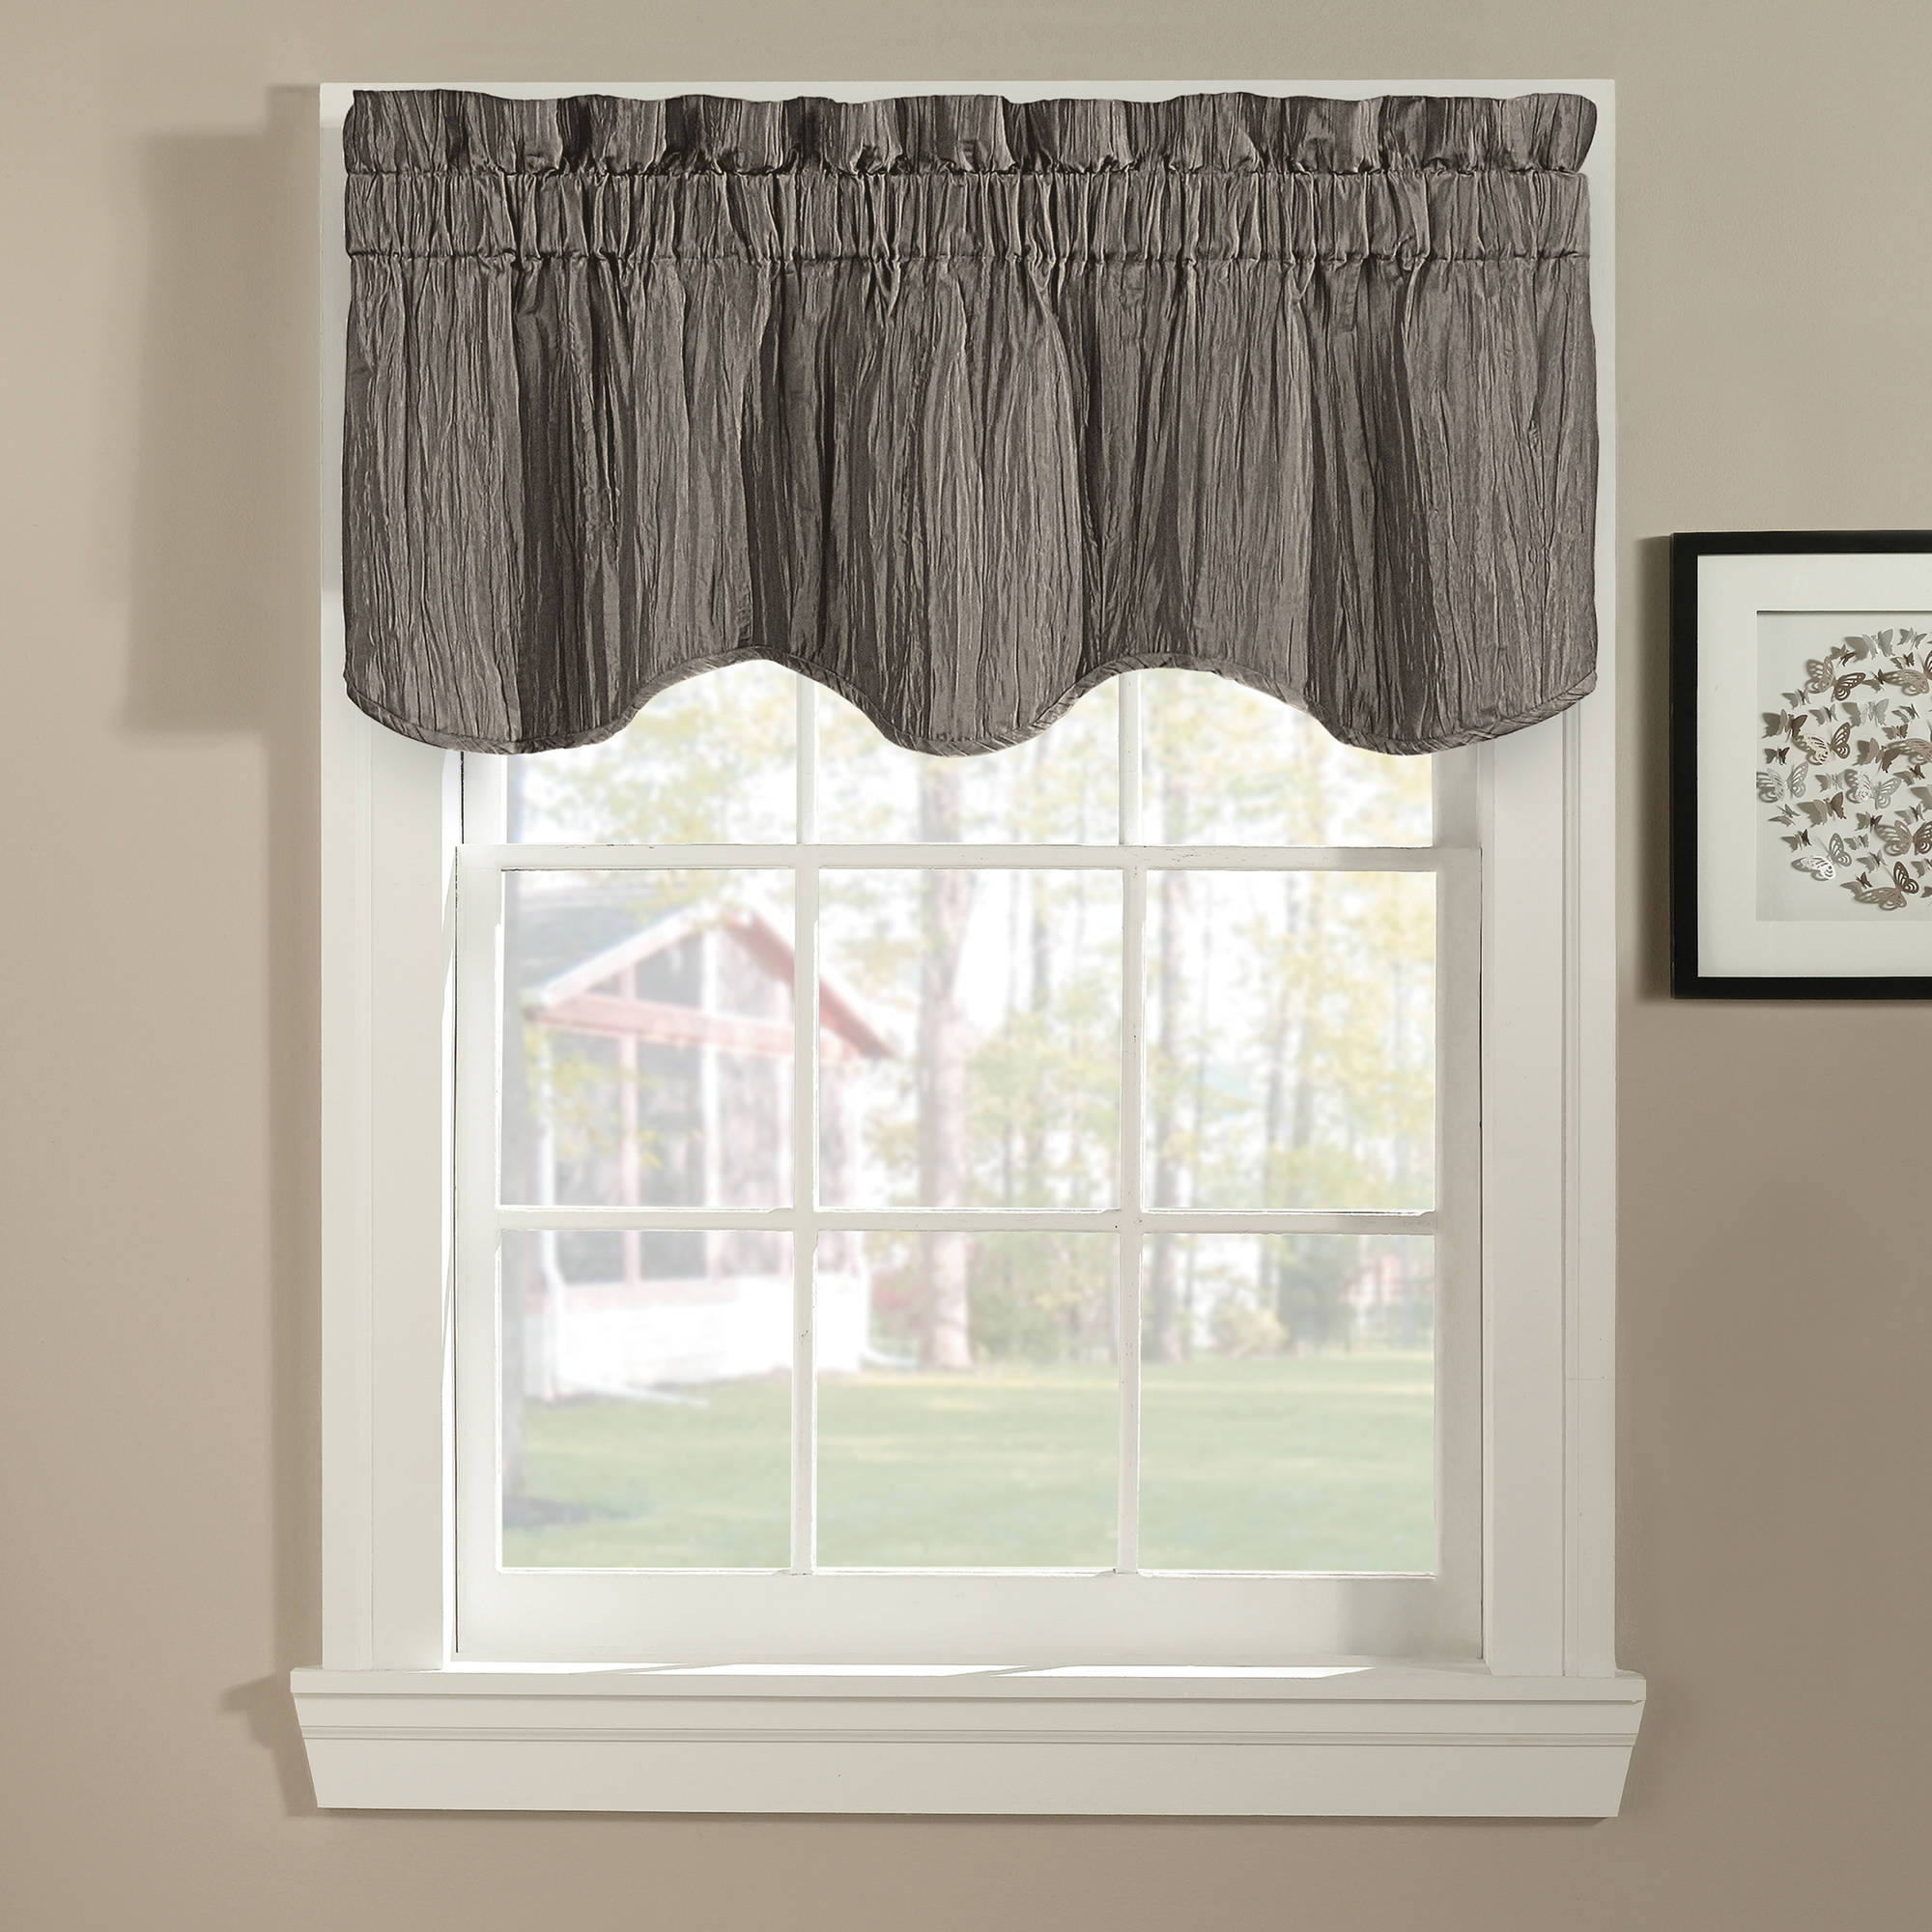 valances for kitchen windows american standard faucet repair leah window valance yellow grey walmart com